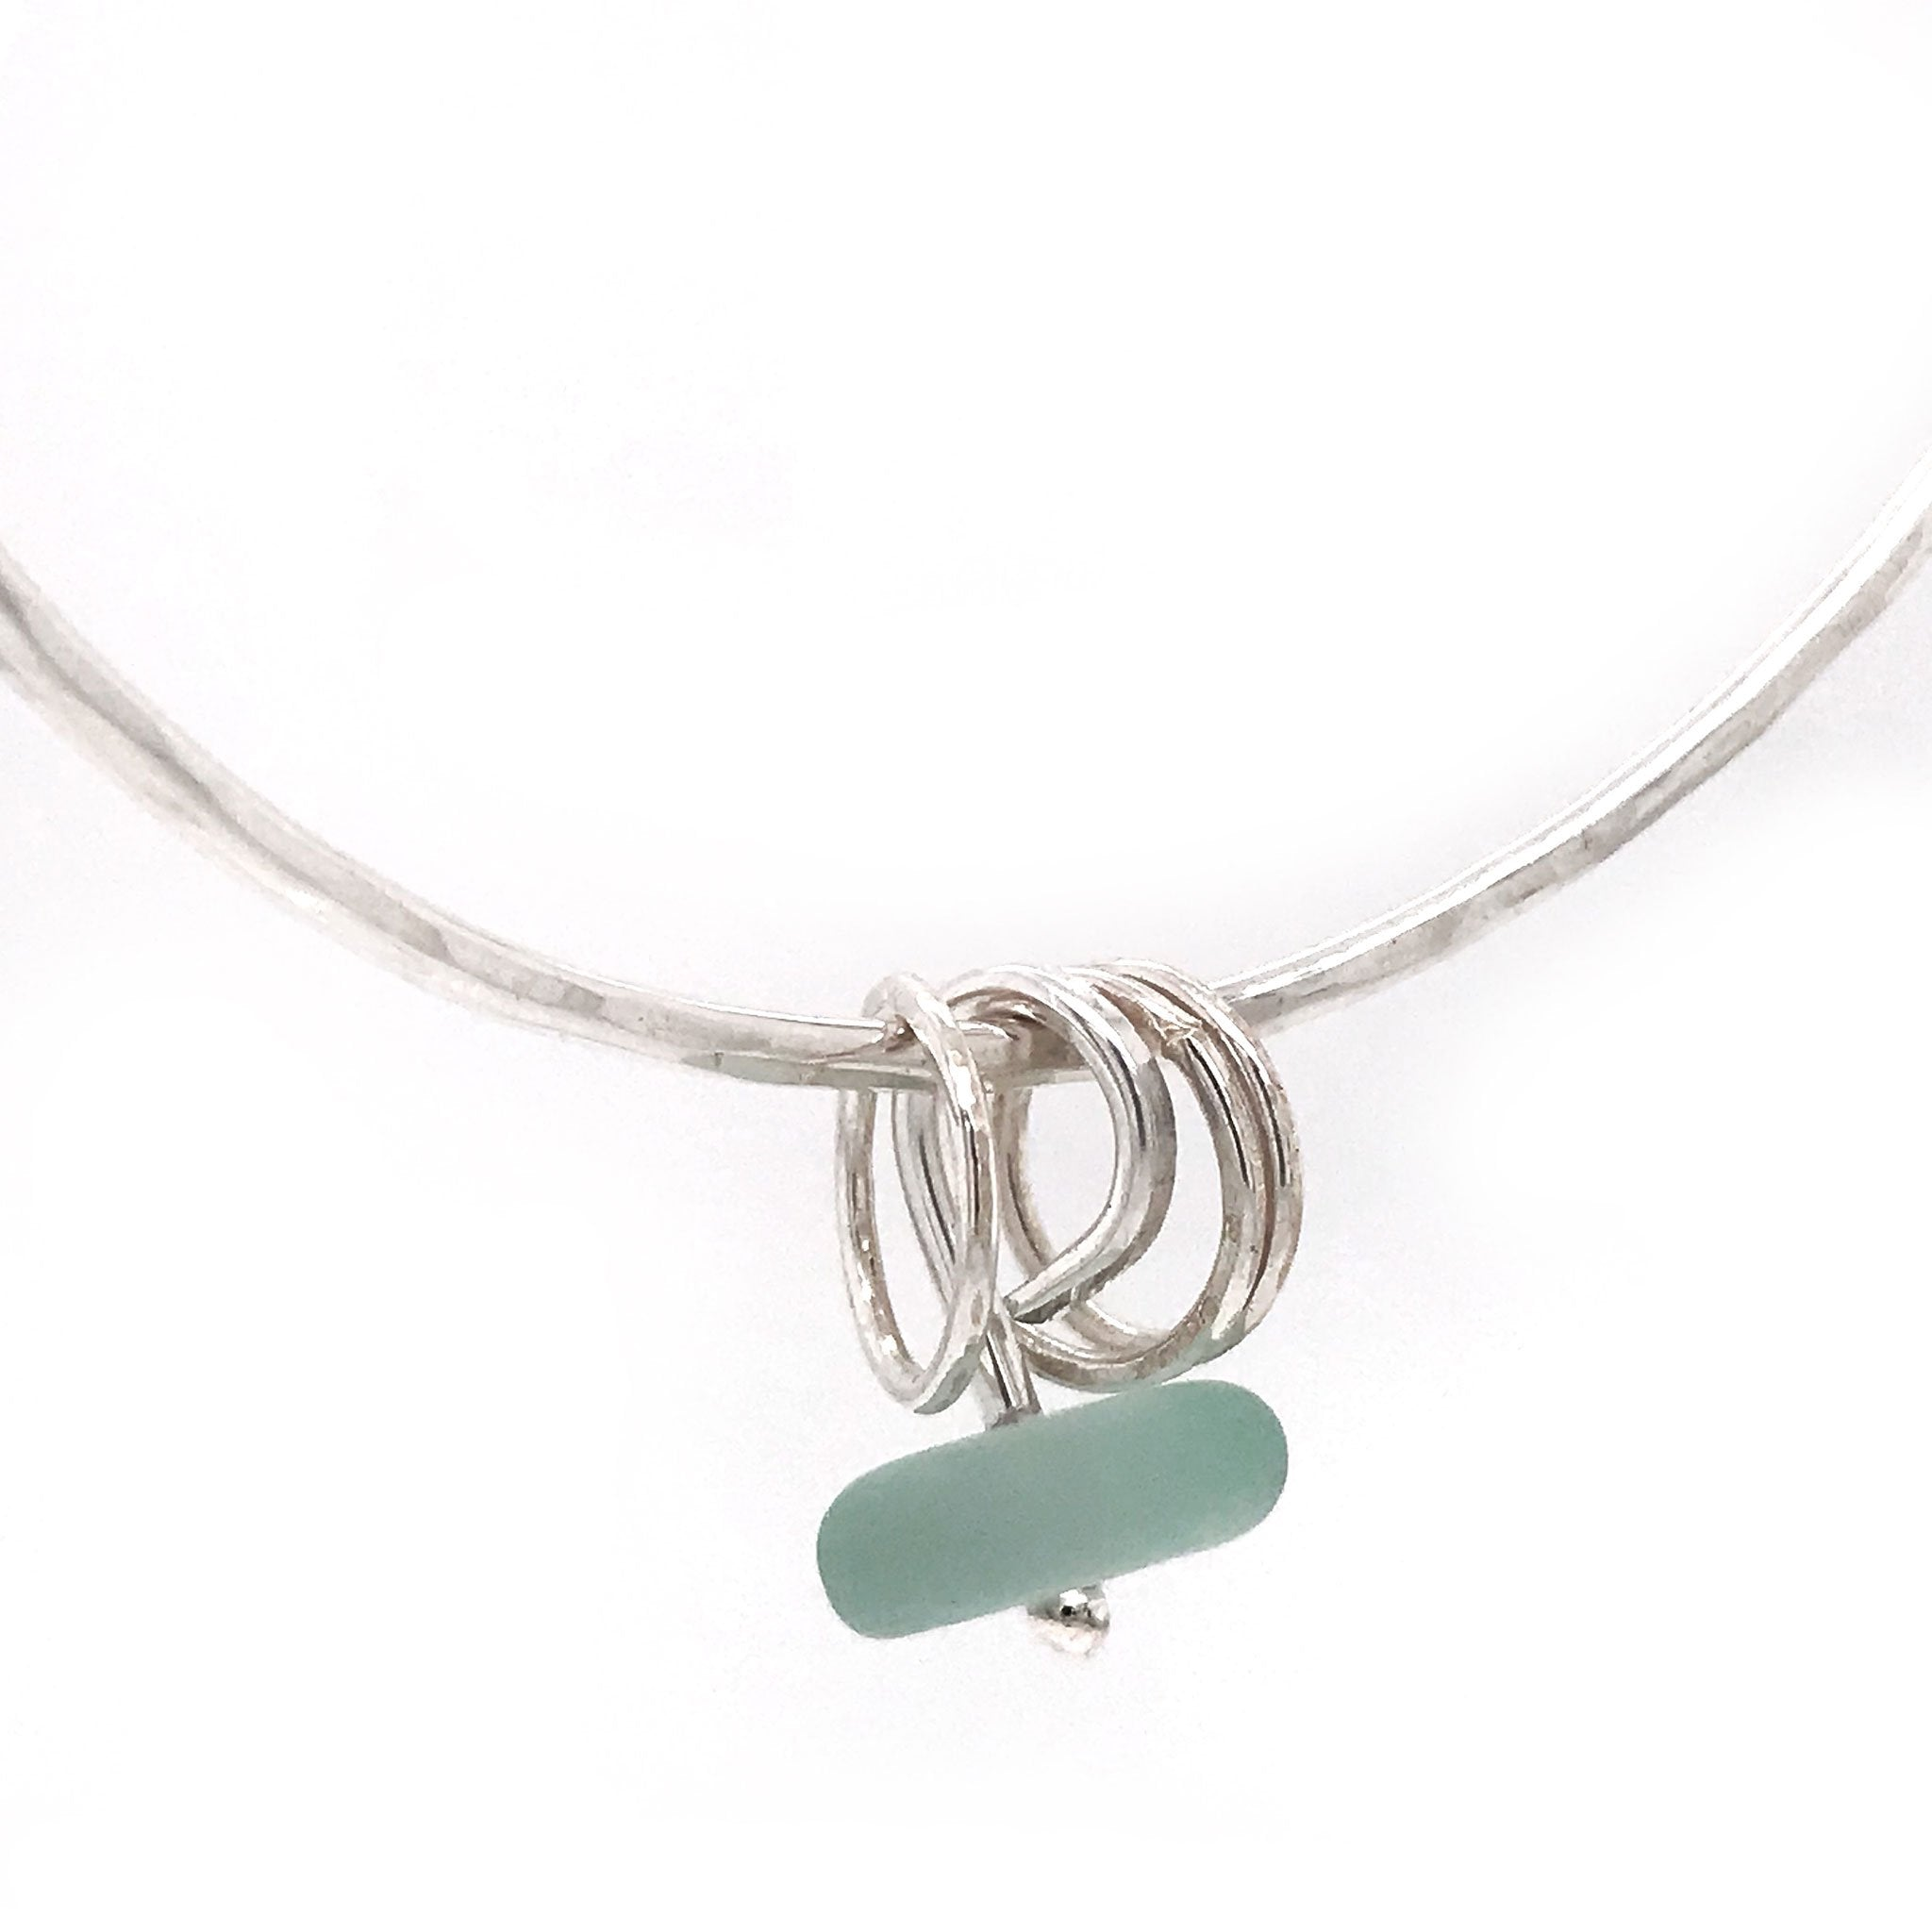 seafoam seaglass bangle silver kriket broadhurst jewellery Australian made